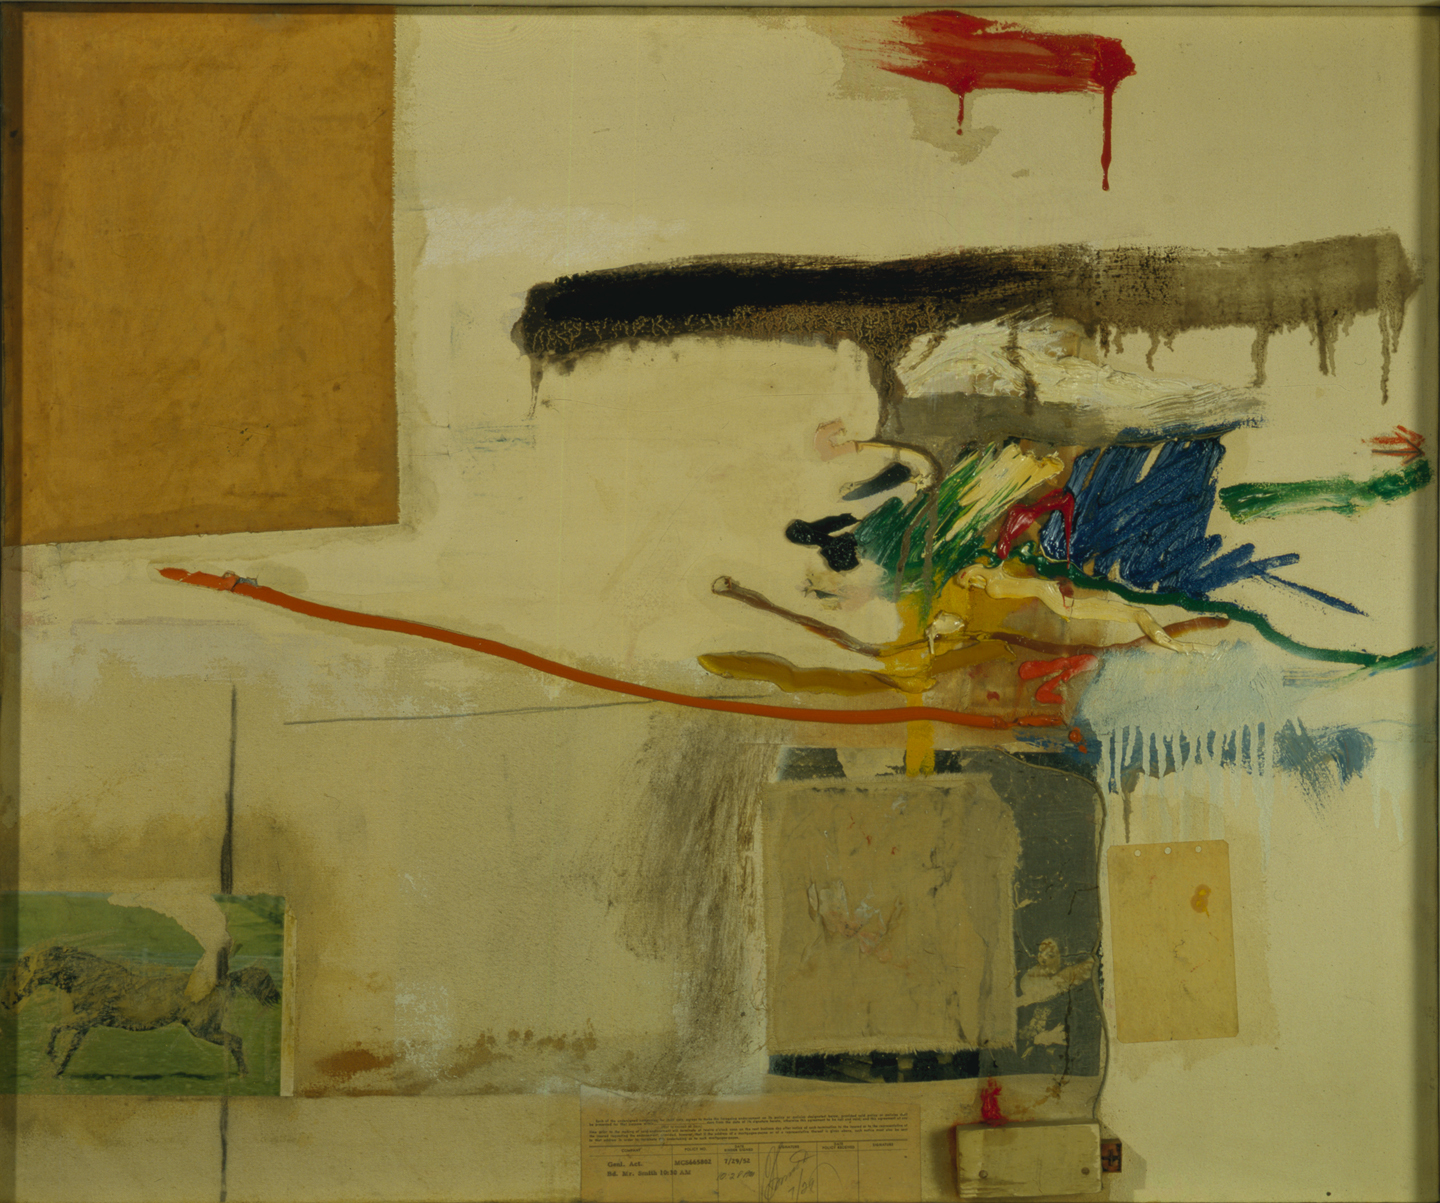 Image for Untitled (formerly titled Collage with Horse), 1957